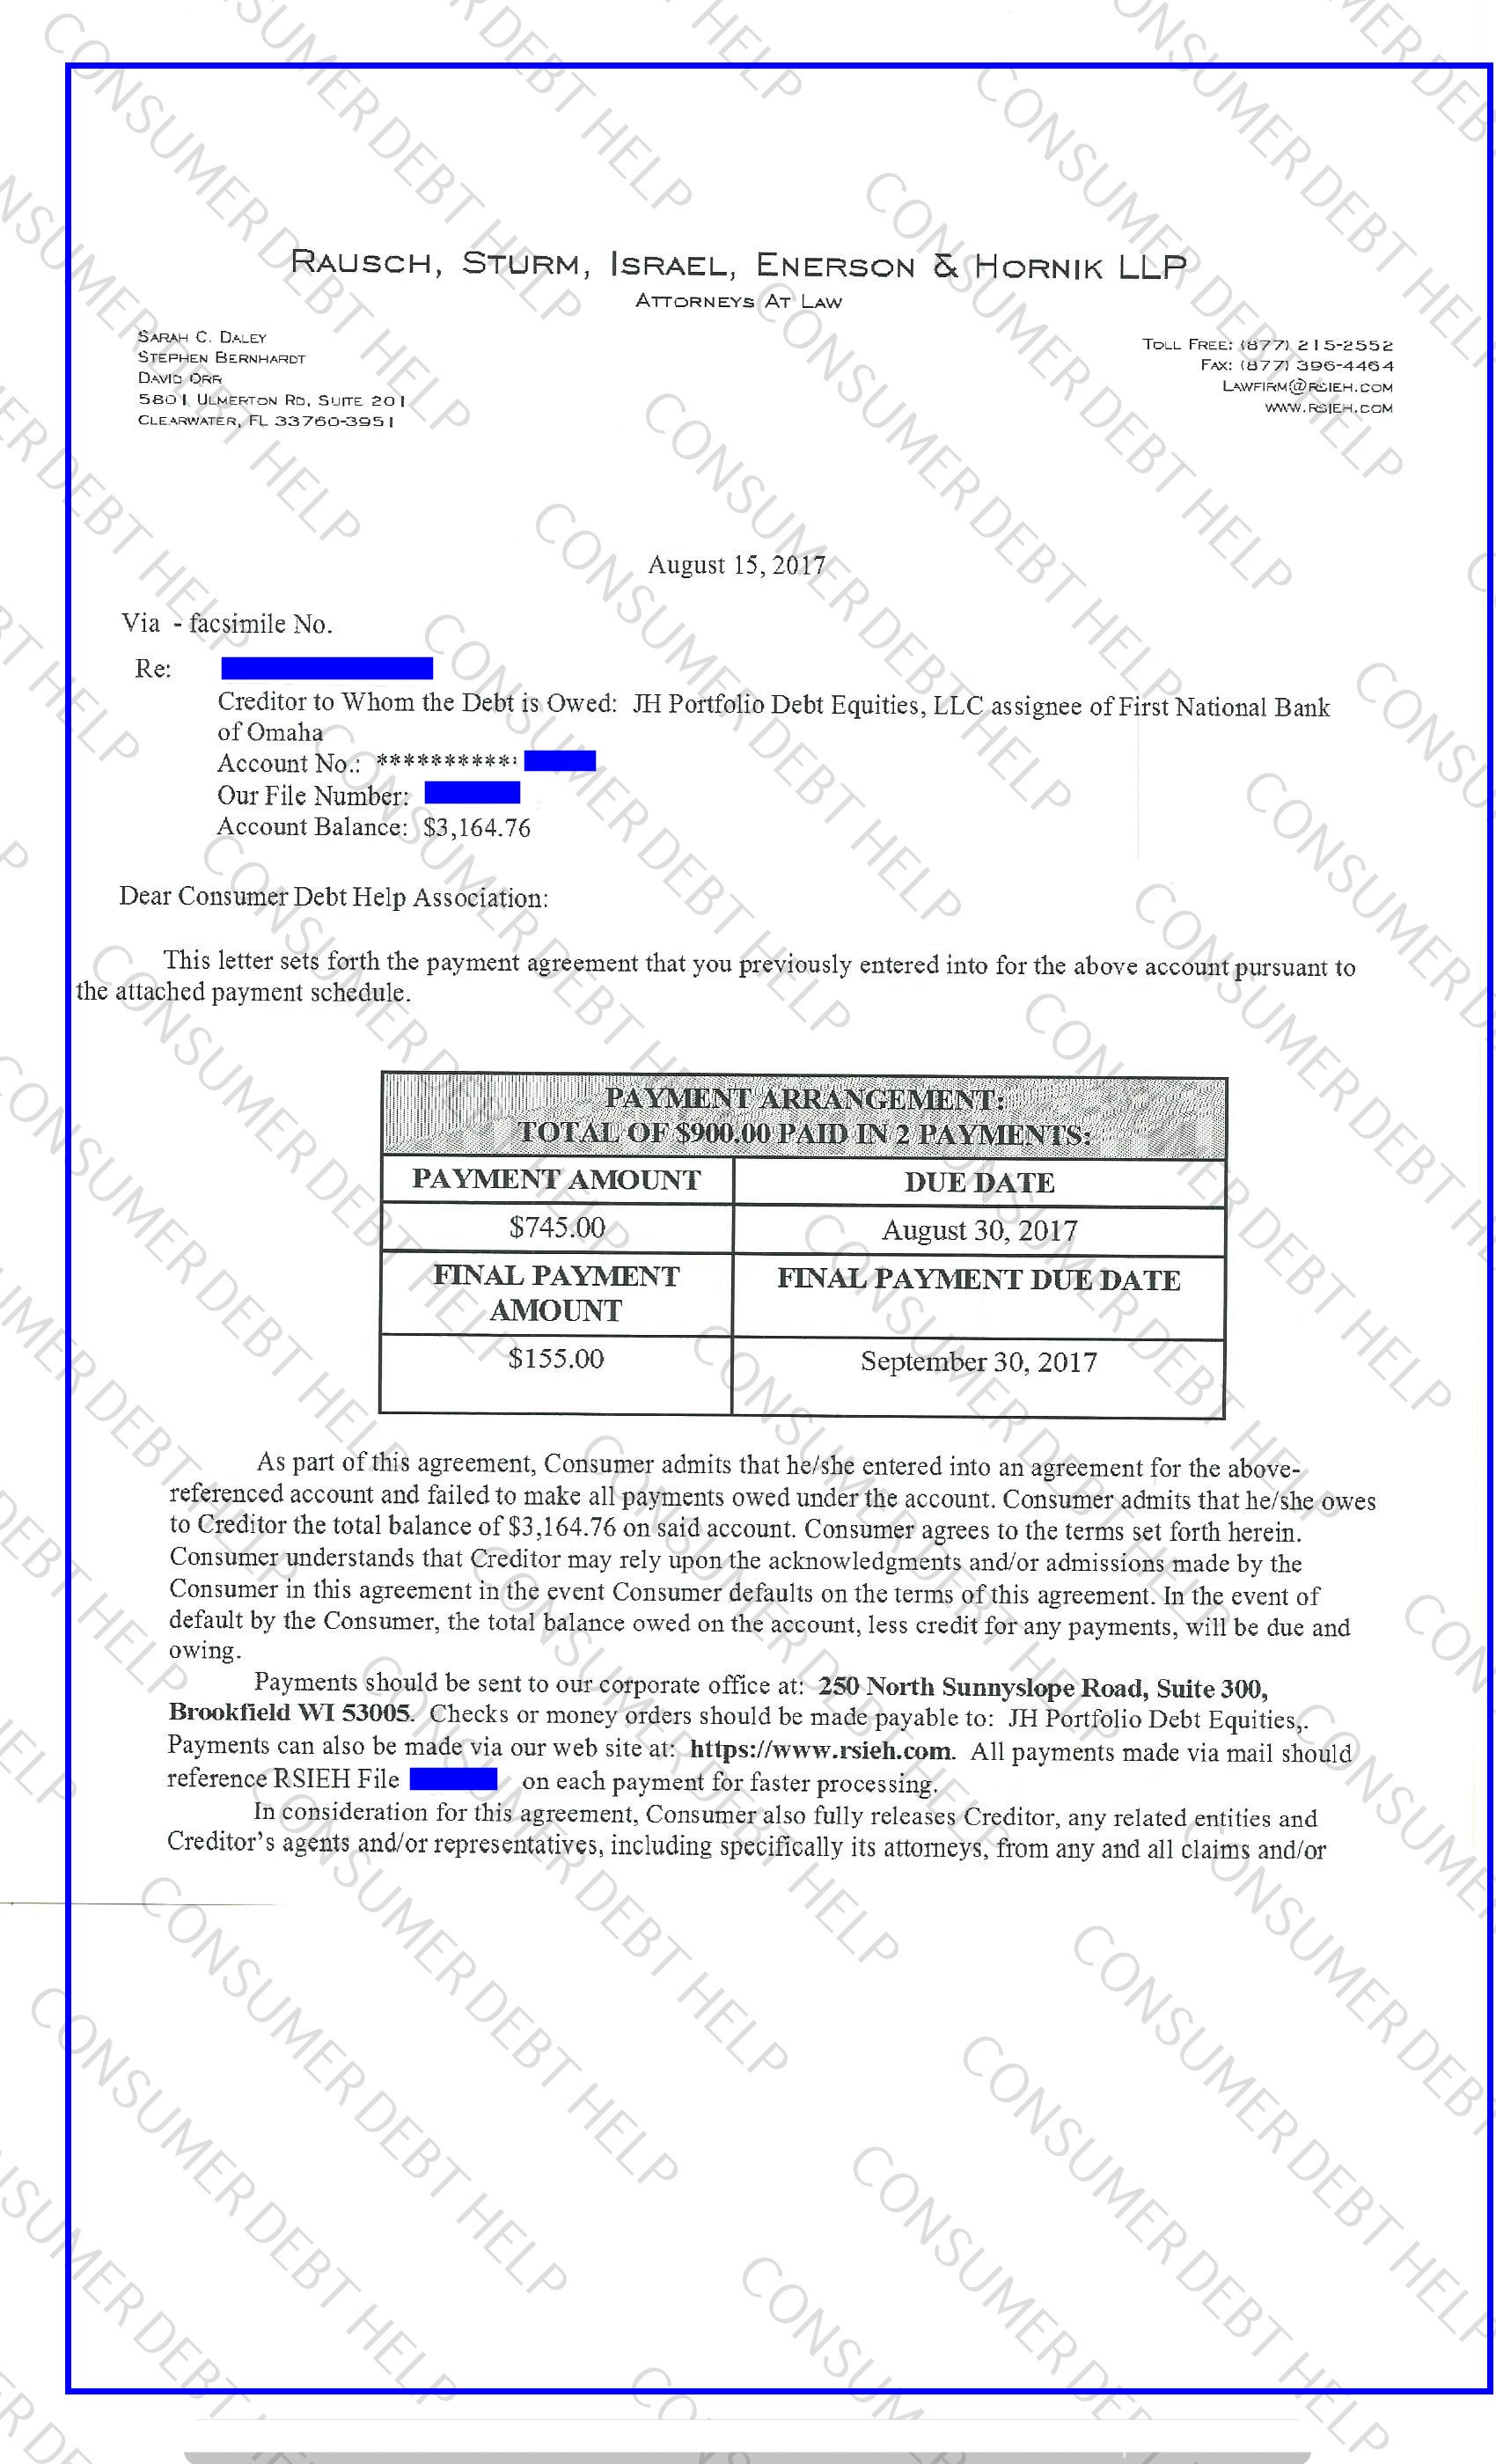 Settlement letters from first national bank of omaha consumer debt relief specialist wants to share a settlement letter from first national bank of omaha spiritdancerdesigns Gallery